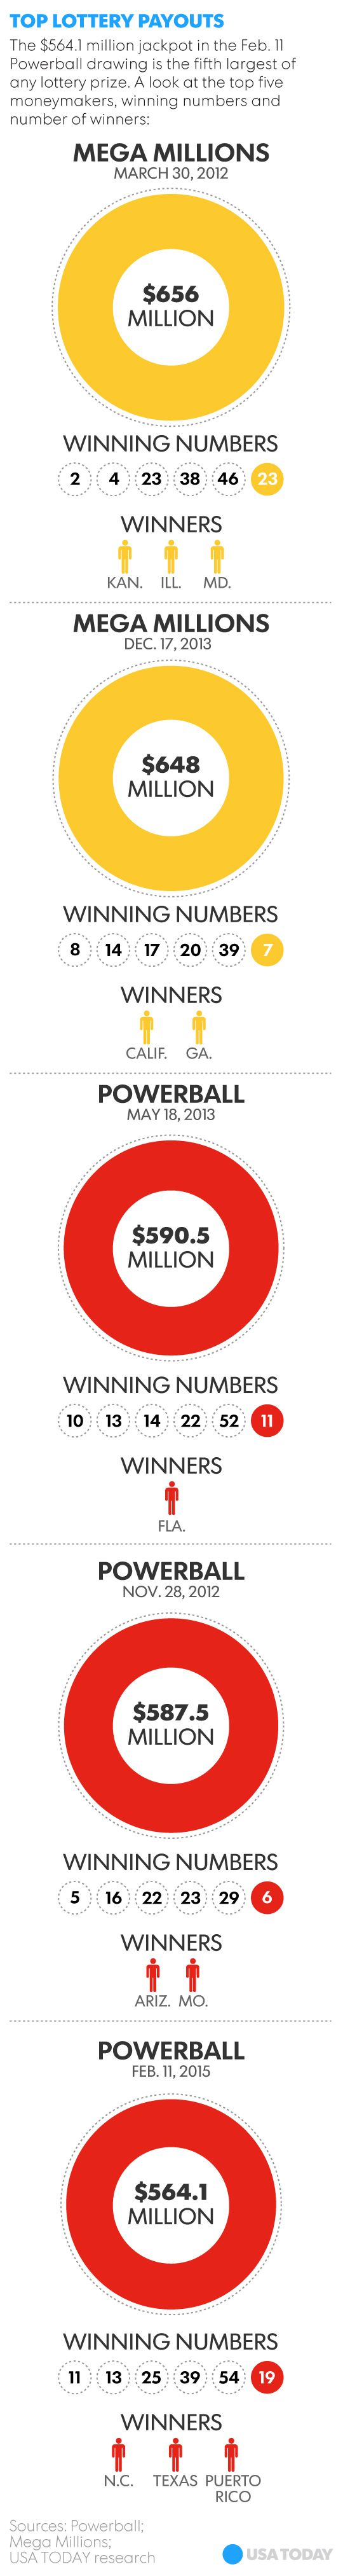 Three hit $564M Powerball jackpot; many others enriched